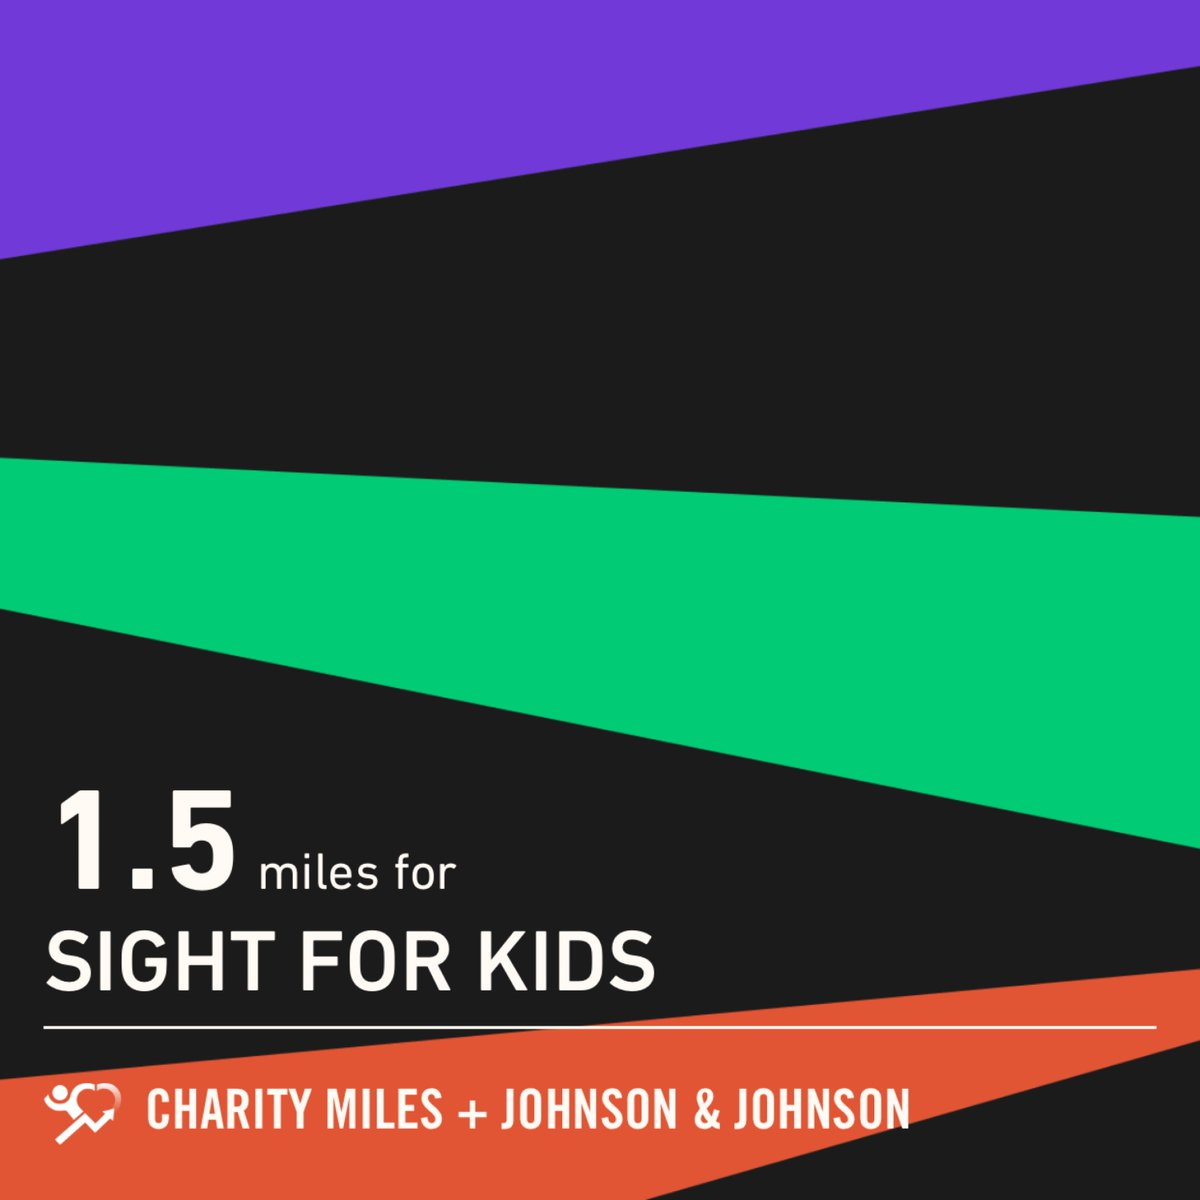 In solidarity with #GCFest, 1.5 @CharityMiles for #SightForKids. Thx2 #JNJ & #DonateAPhoto. https://t.co/JDOQ0Qjmon